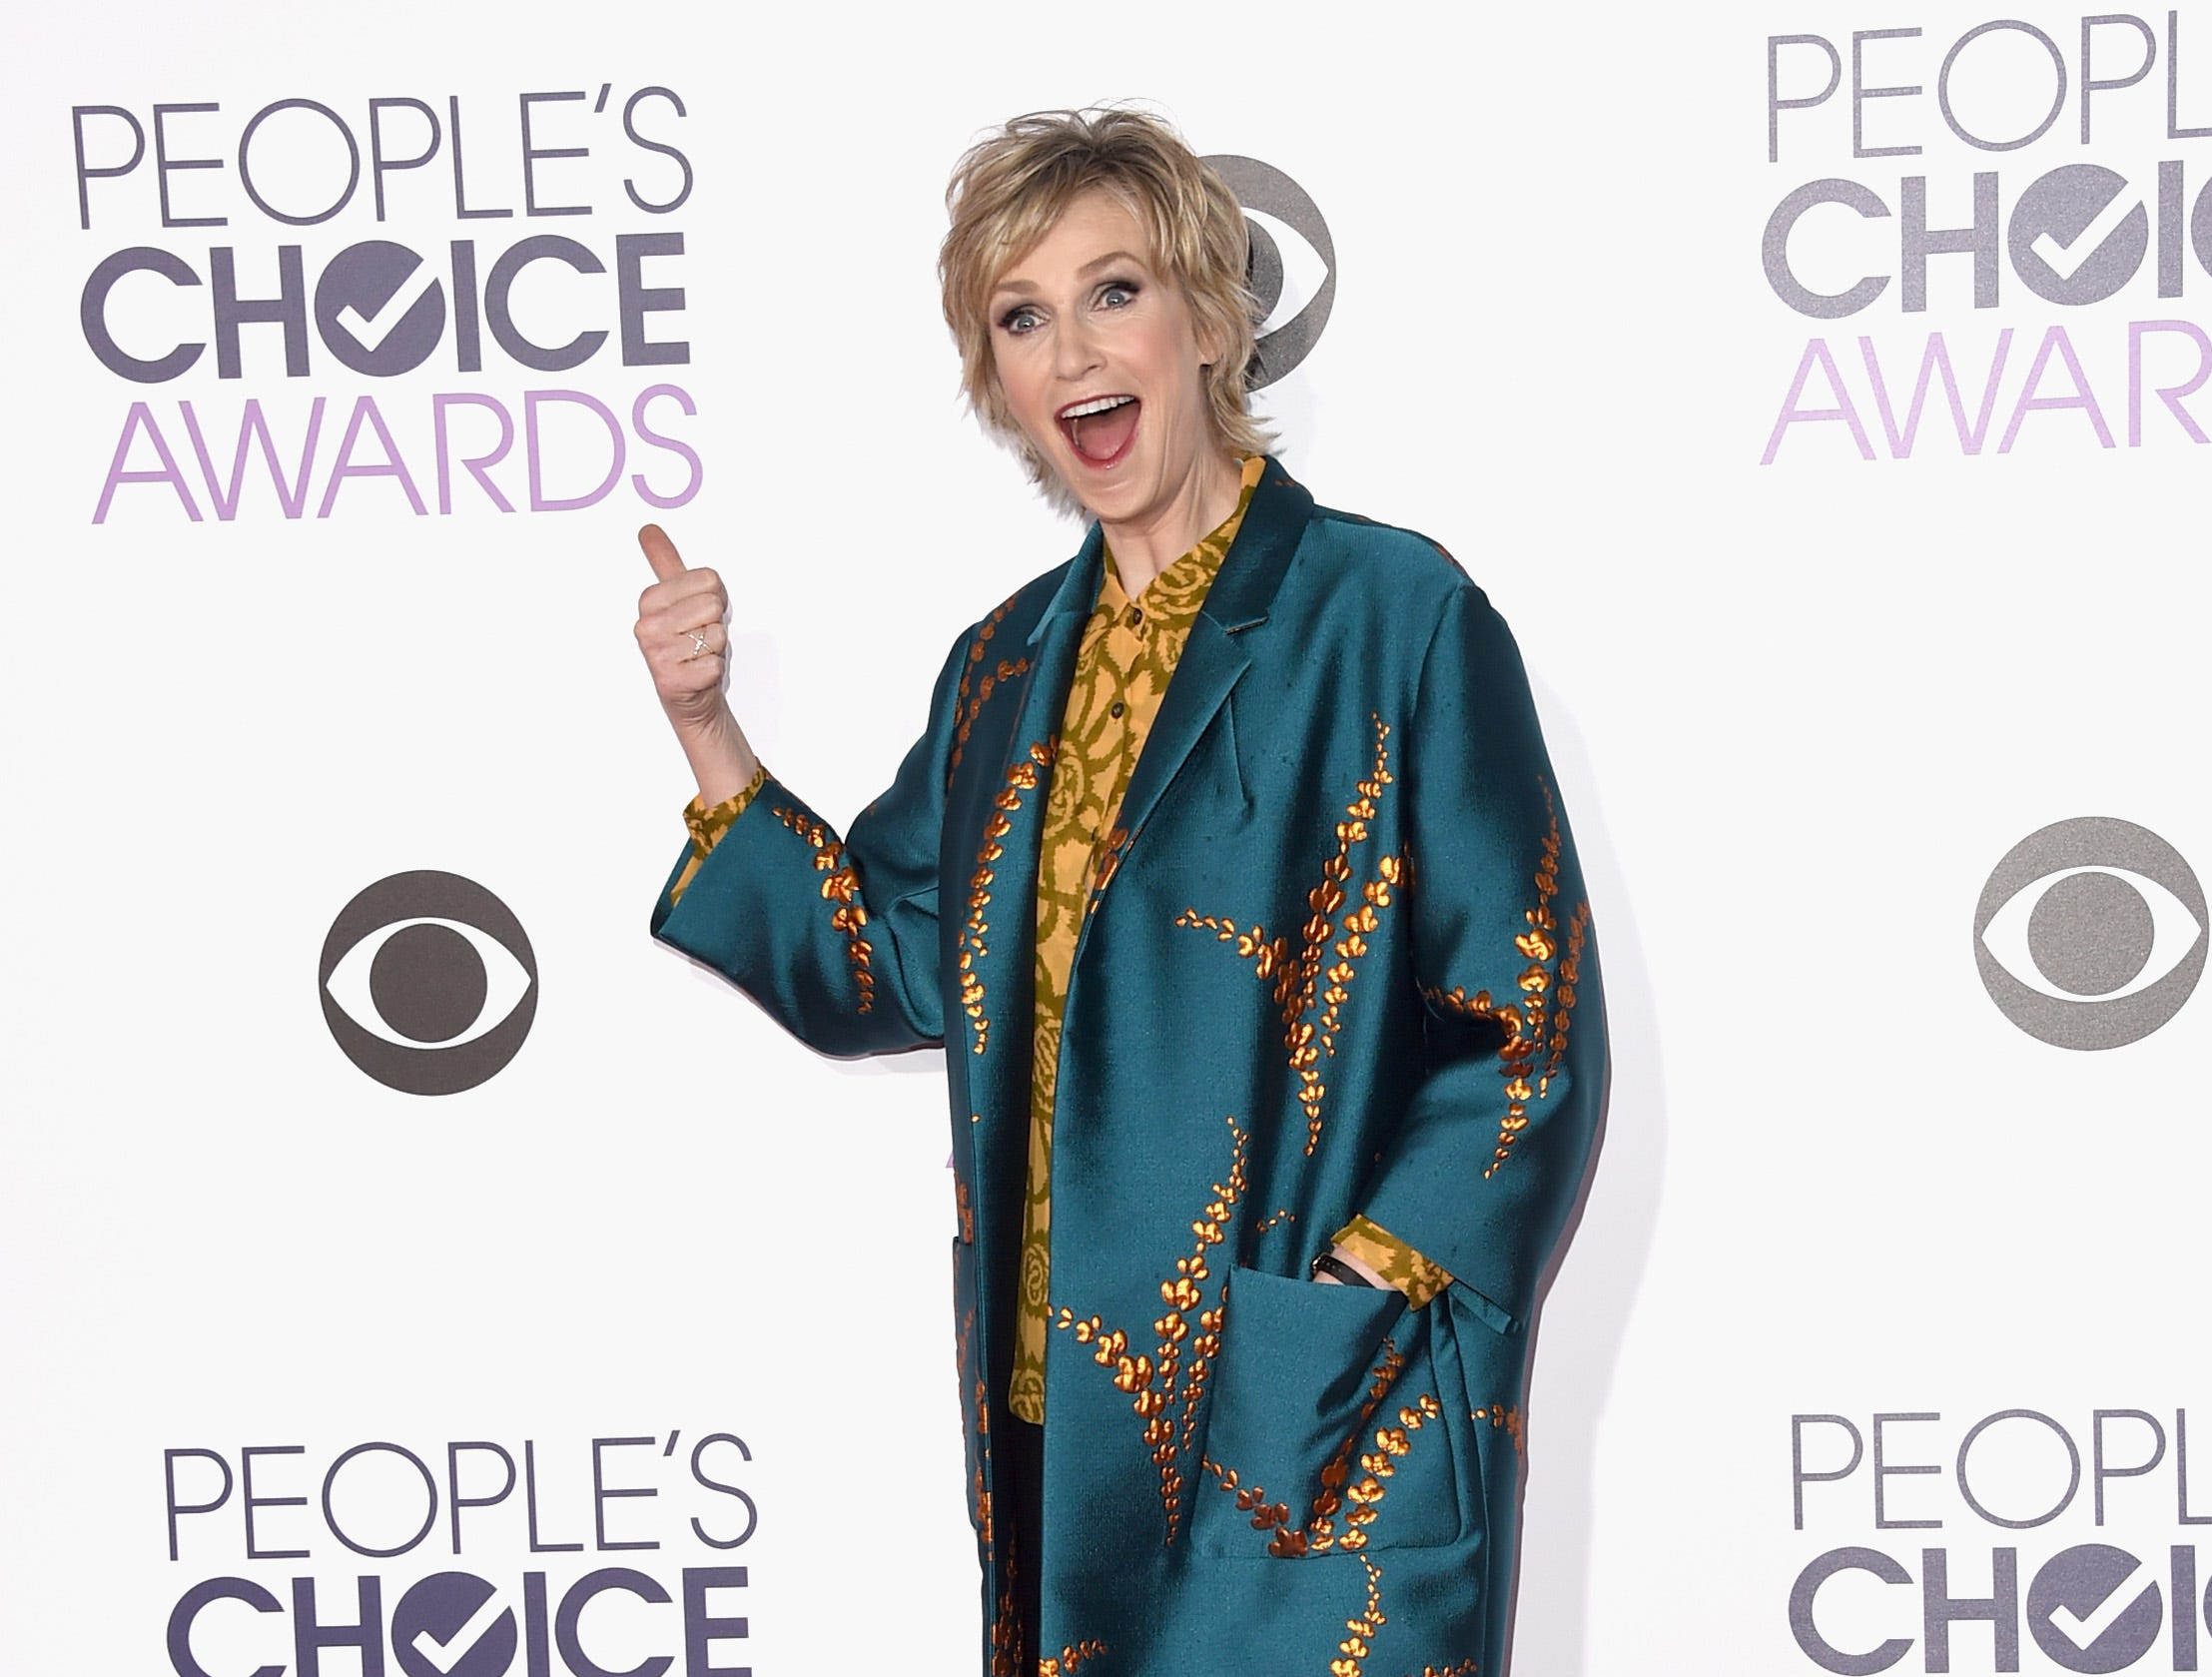 LOS ANGELES, CA - JANUARY 06: Actress Jane Lynch attends the People's Choice Awards 2016 at Microsoft Theater on January 6, 2016 in Los Angeles, California.  (Photo by Jason Merritt/Getty Images) ORG XMIT: 585845407 ORIG FILE ID: 503676702